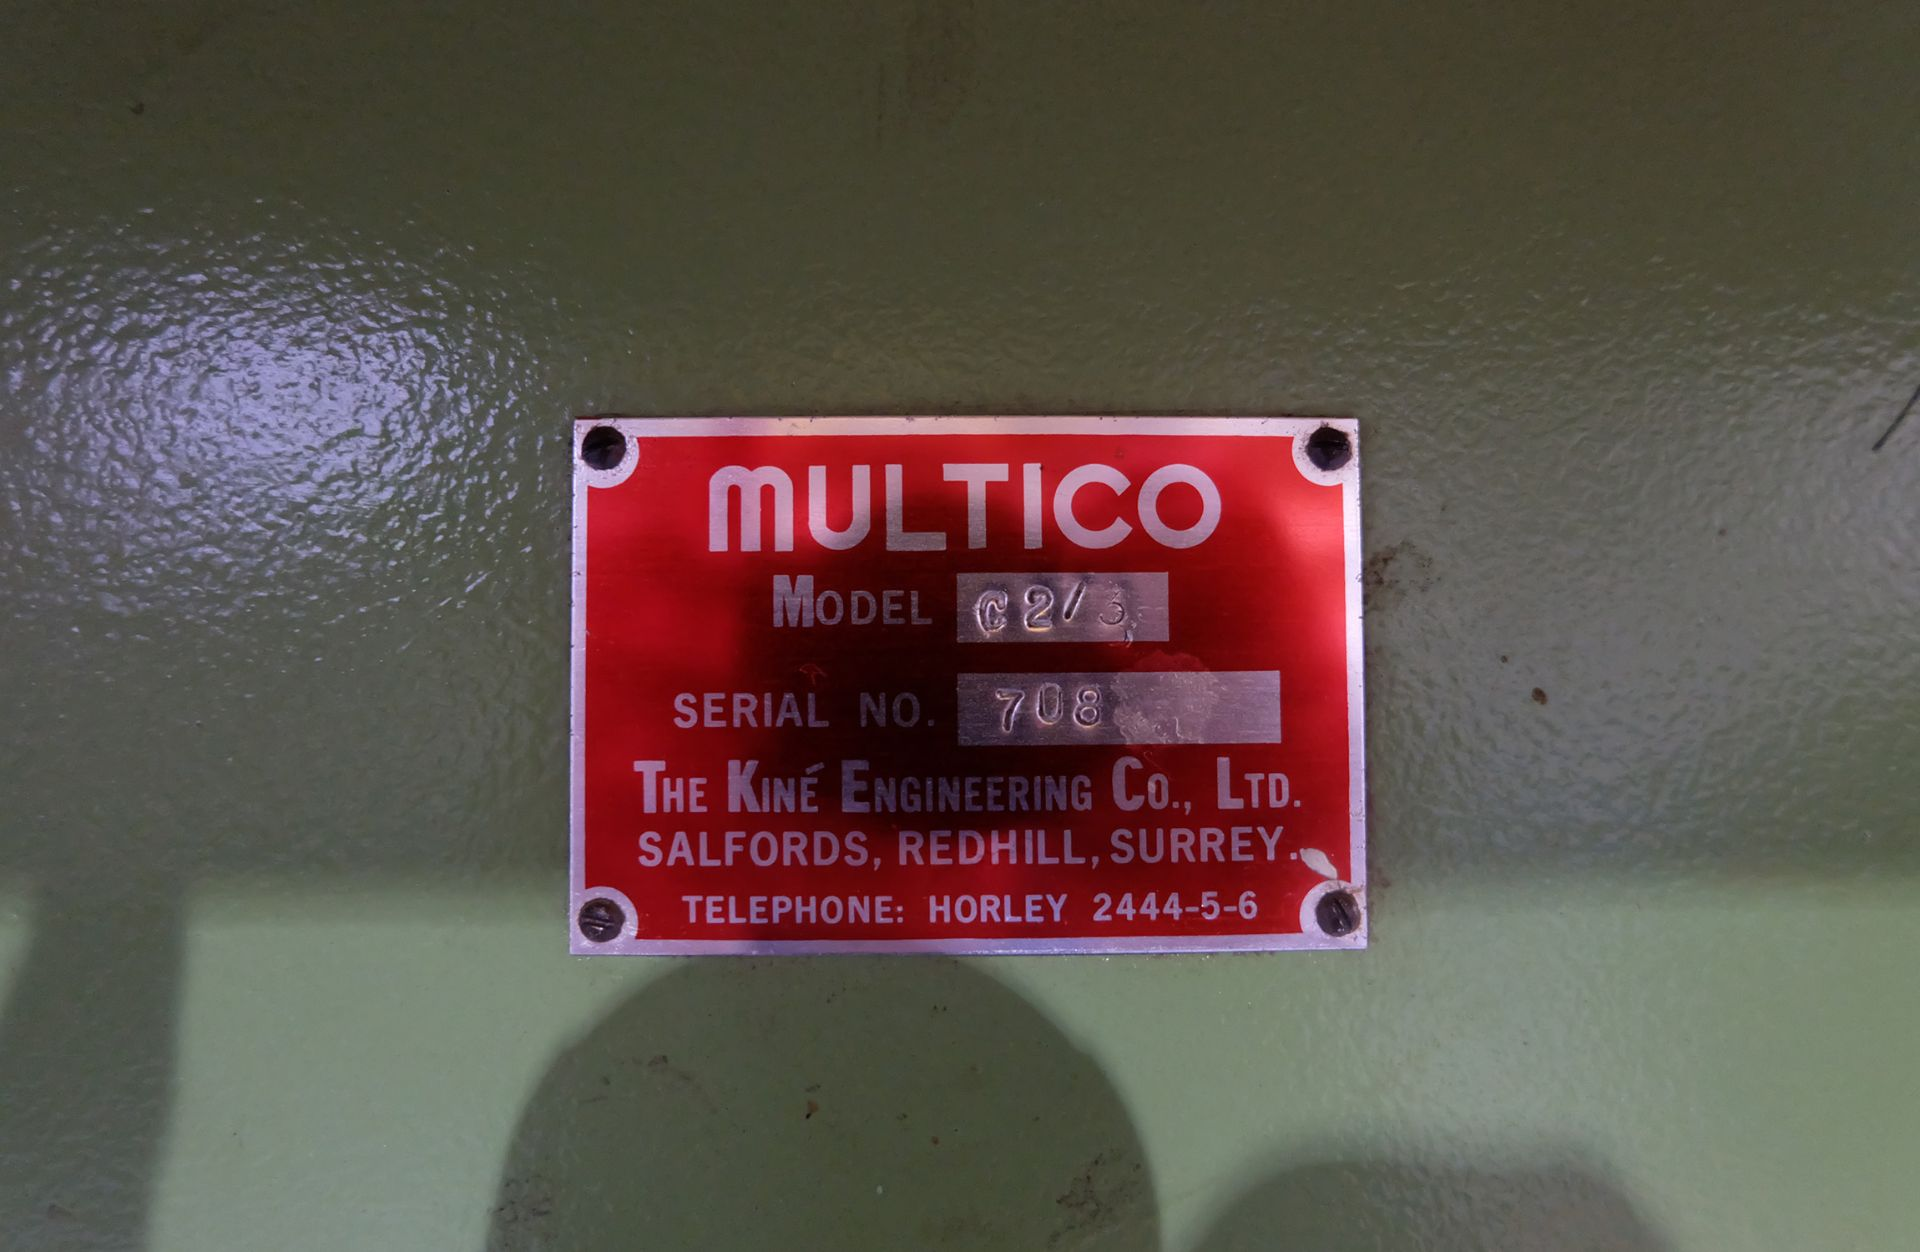 Multico Model C2/3 Radial Wood Saw. Swivelling/Tilting Cross Cut Timber Sawing Machine. - Image 5 of 5